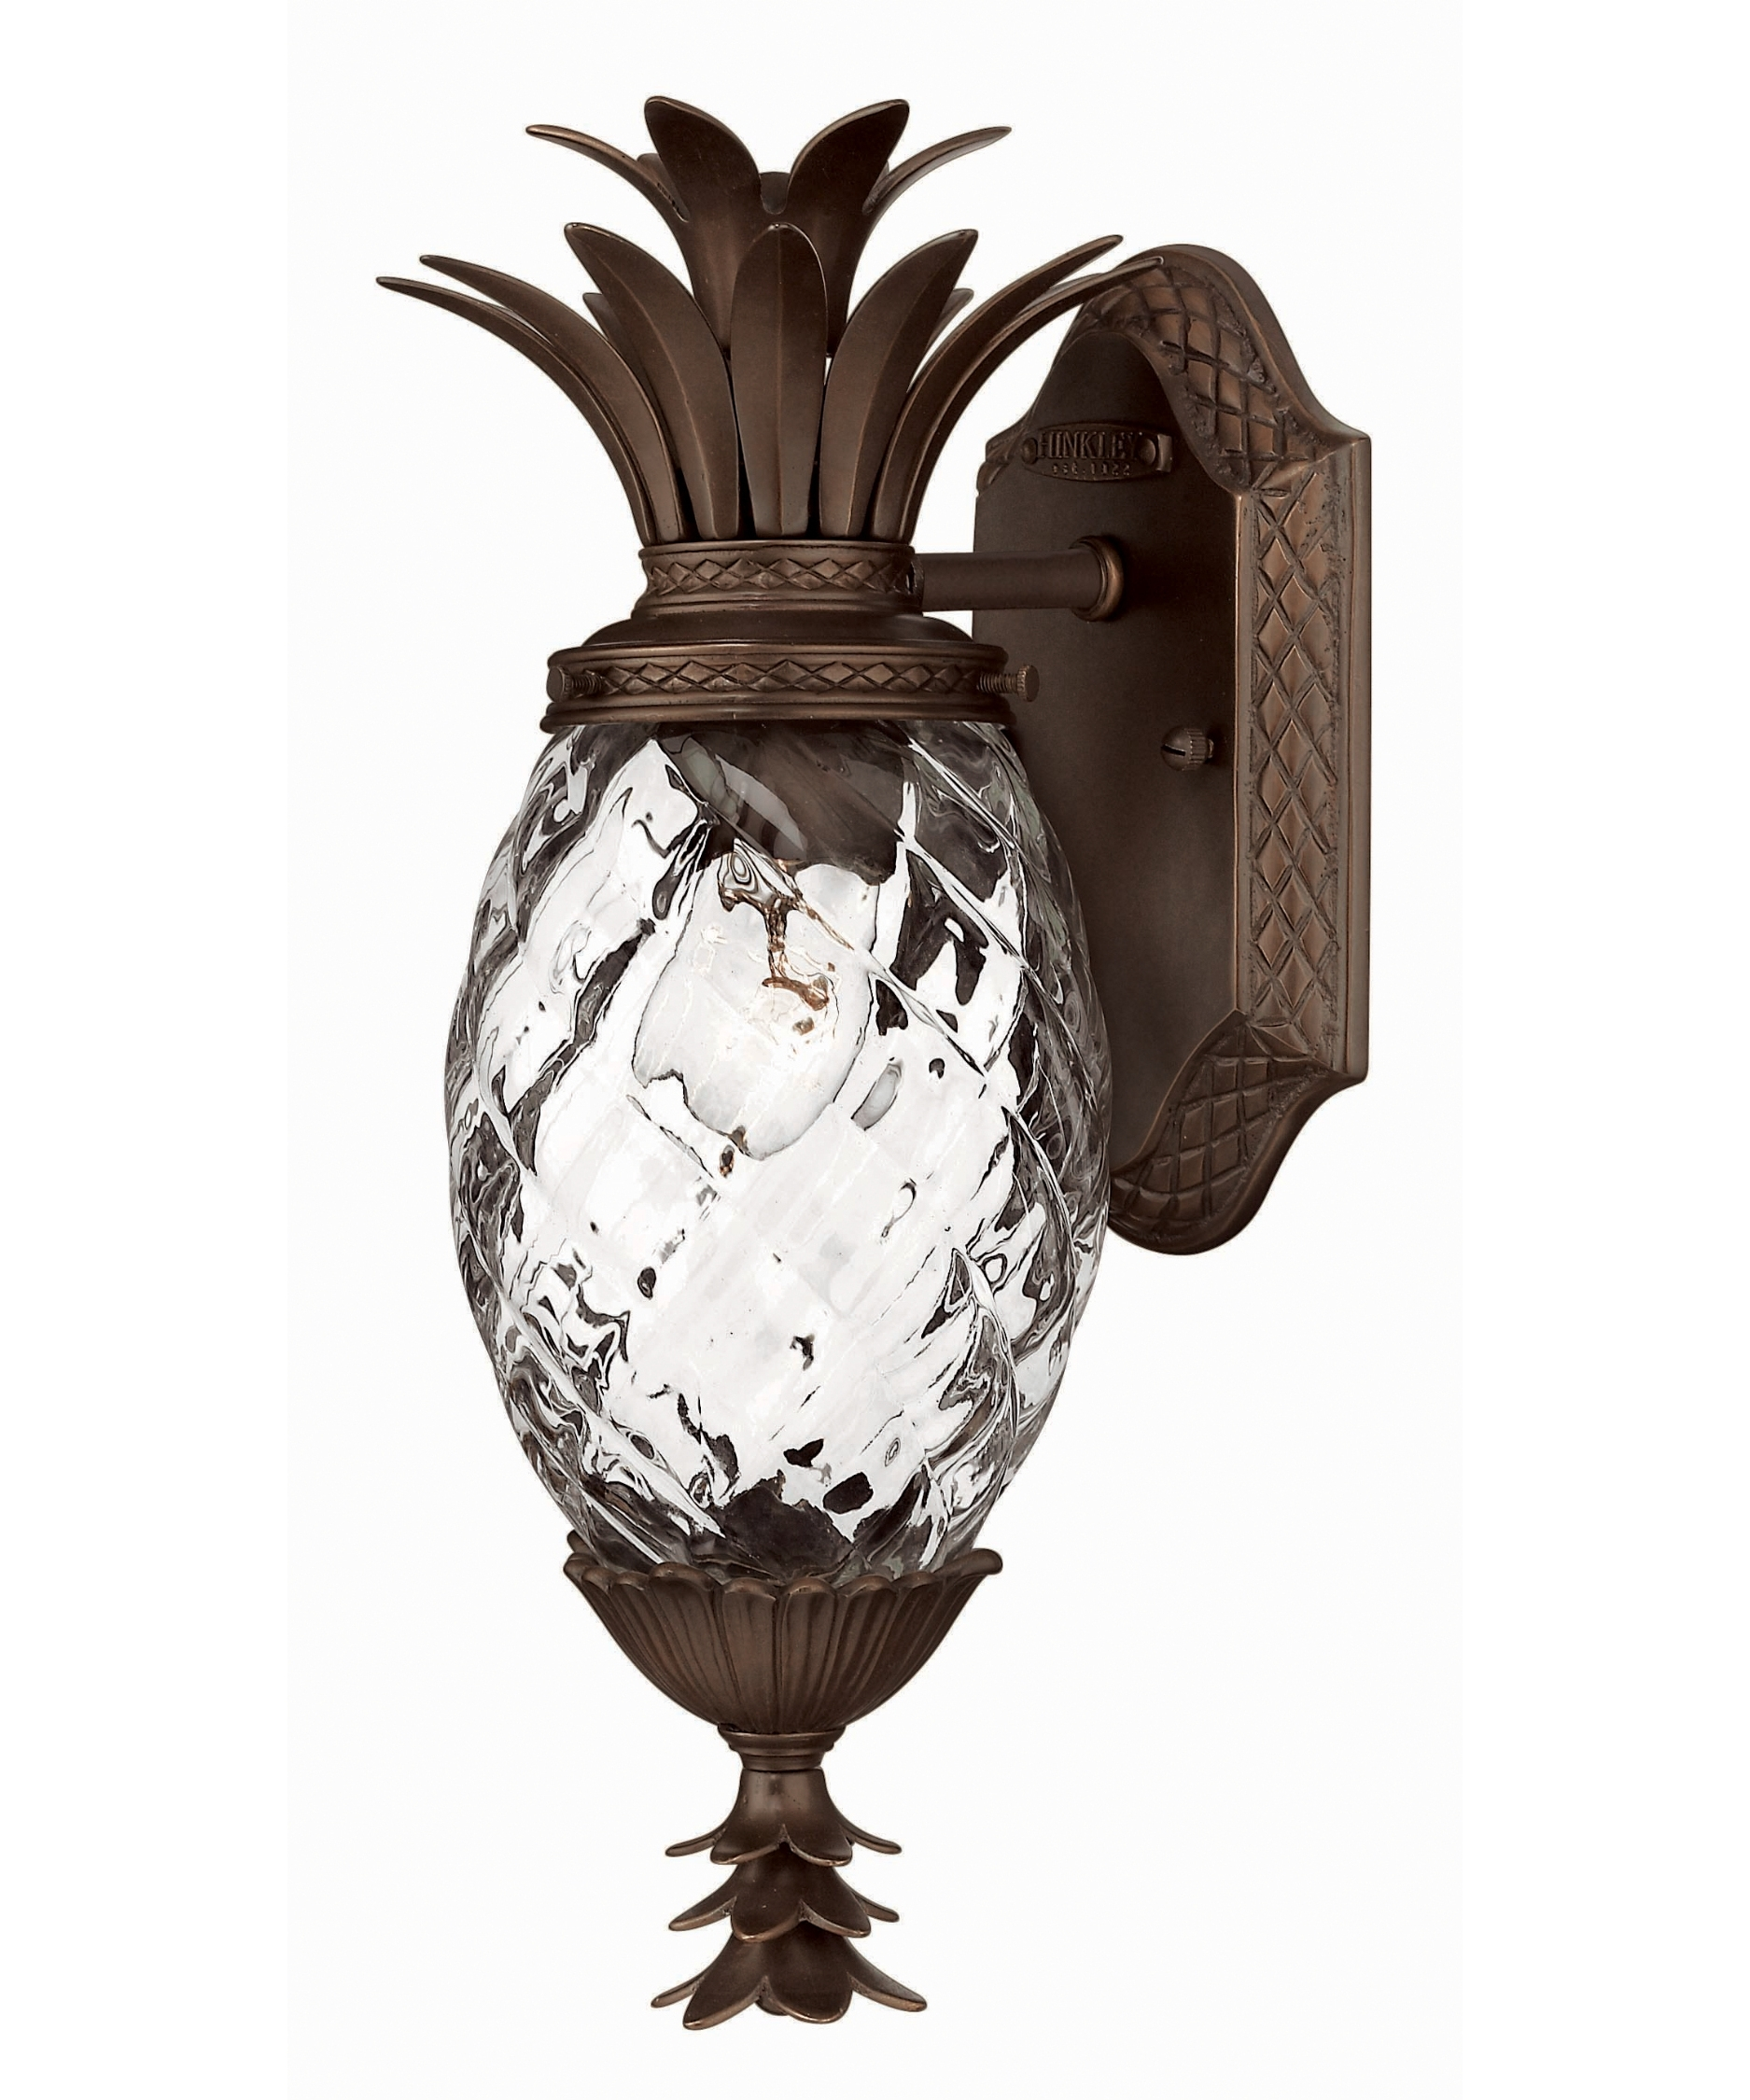 Pineapple Outdoor Wall Lights Inside Most Recently Released Fresh Perfect Pineapple Outdoor Wall Lights # (View 13 of 20)